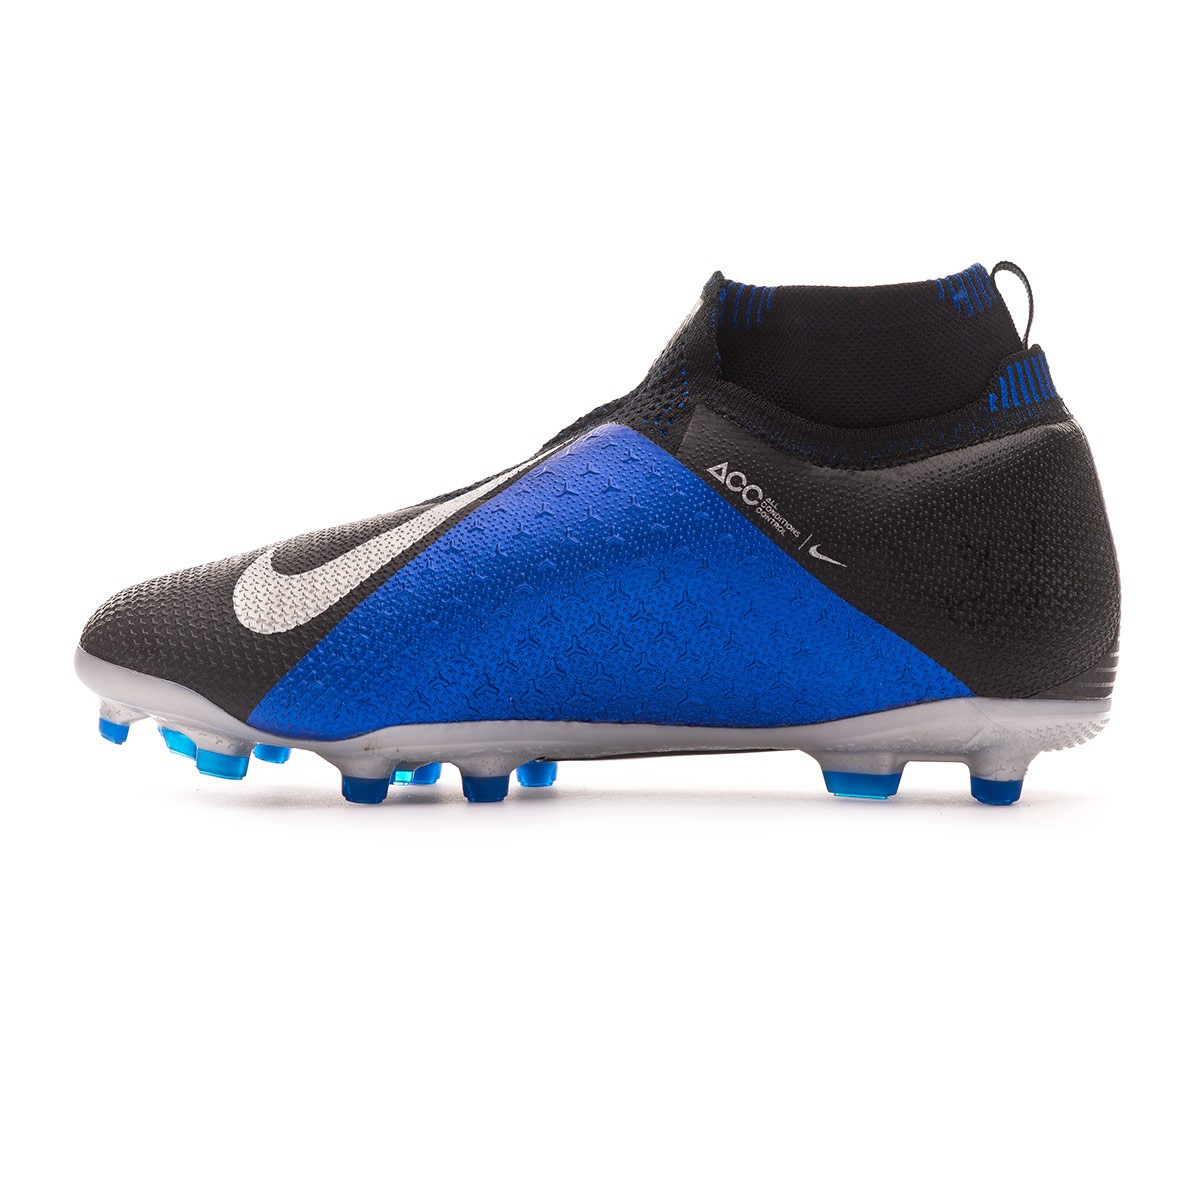 80fb02d72 Football Boots Nike Kids Phantom Vision Elite DF FG MG Black-Metallic  silver-Racer blue - Football store Fútbol Emotion